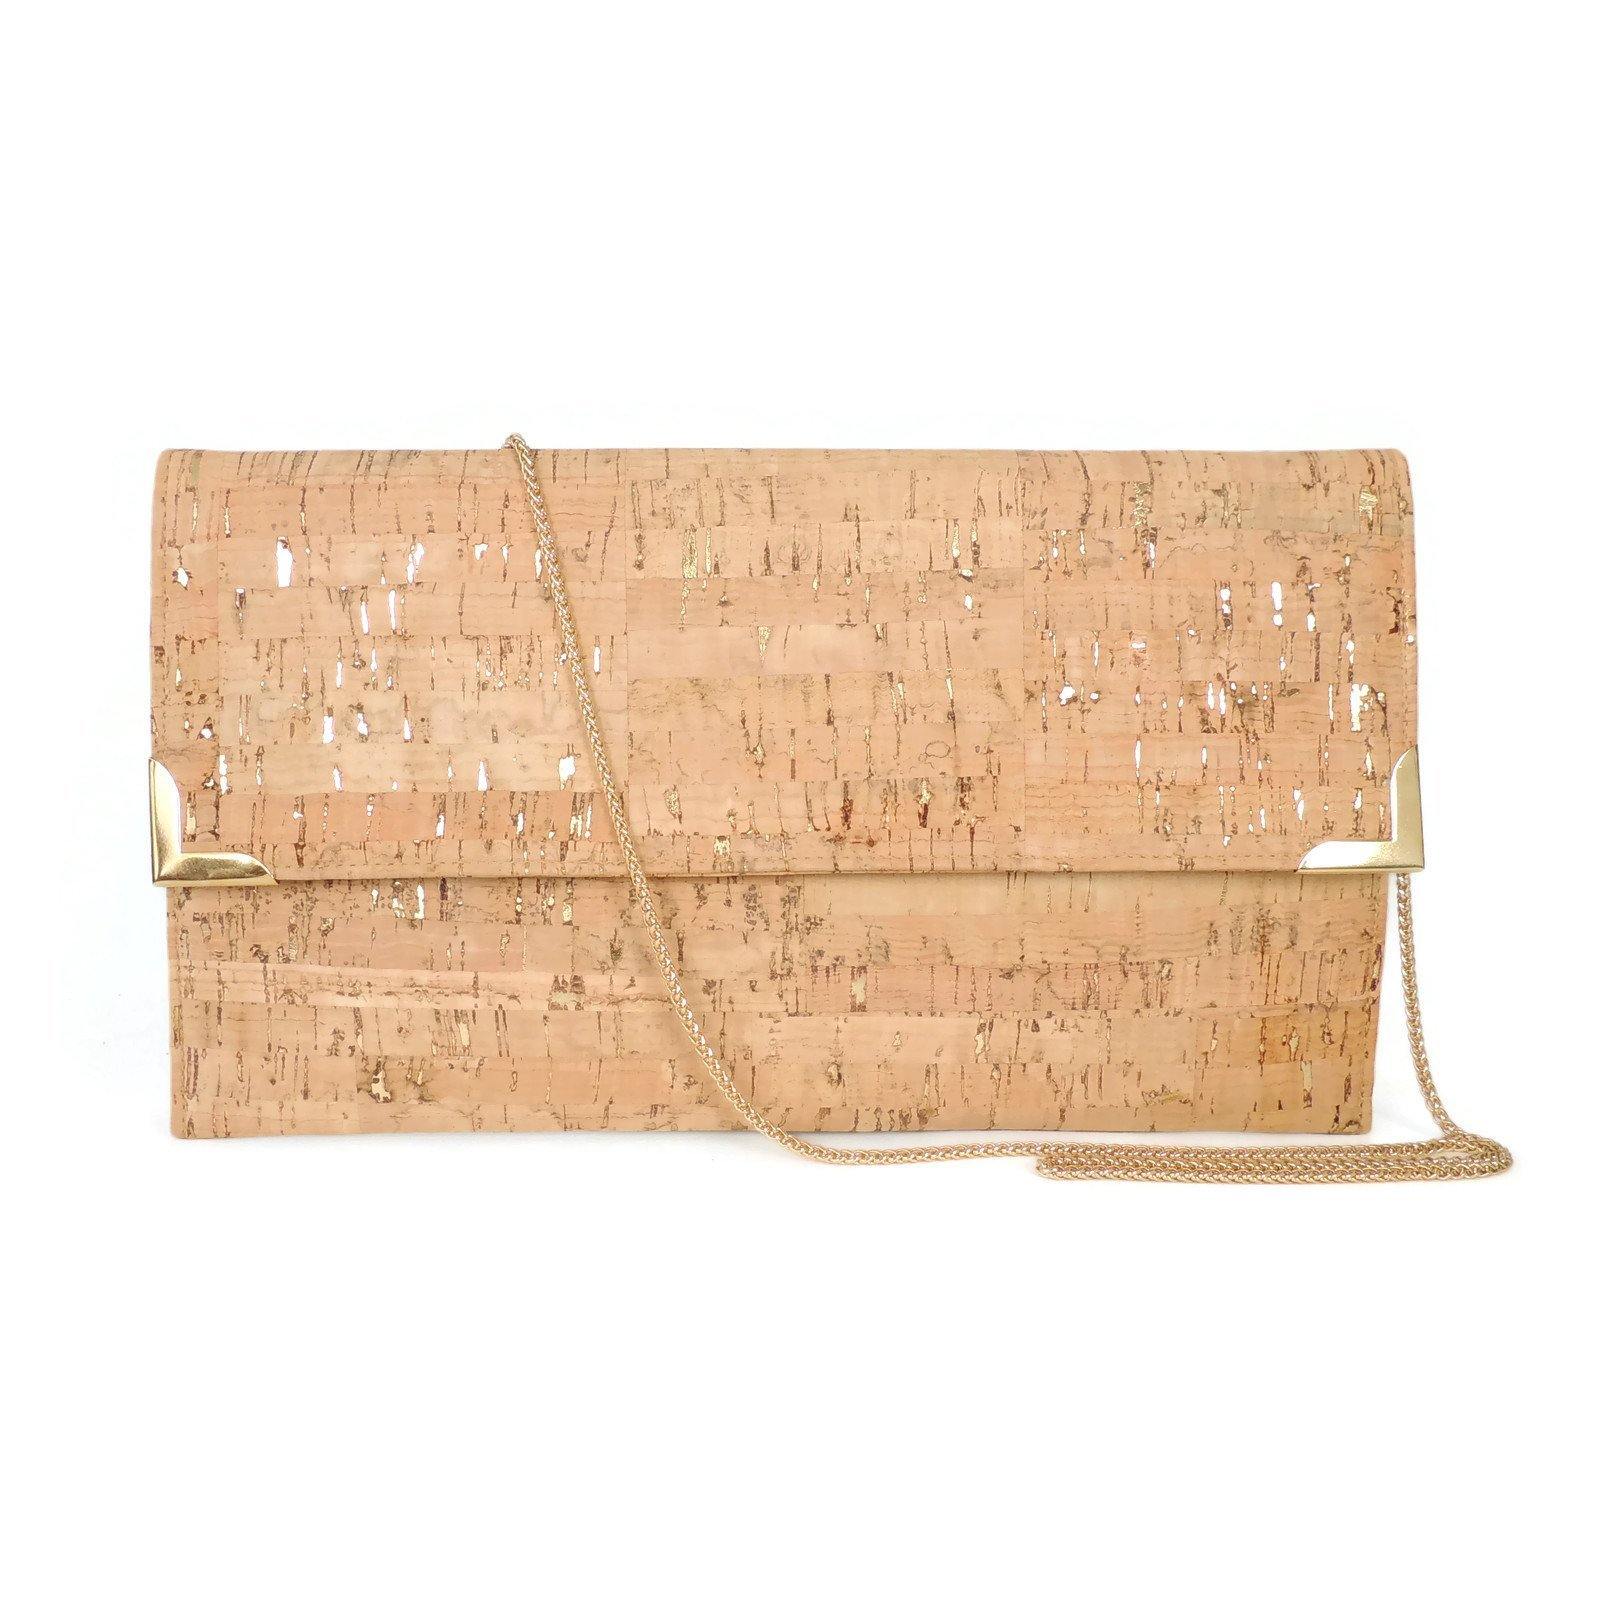 Vegan Cork Foldover Evening Clutch with Chain Shoulder Strap by SPICER BAGS